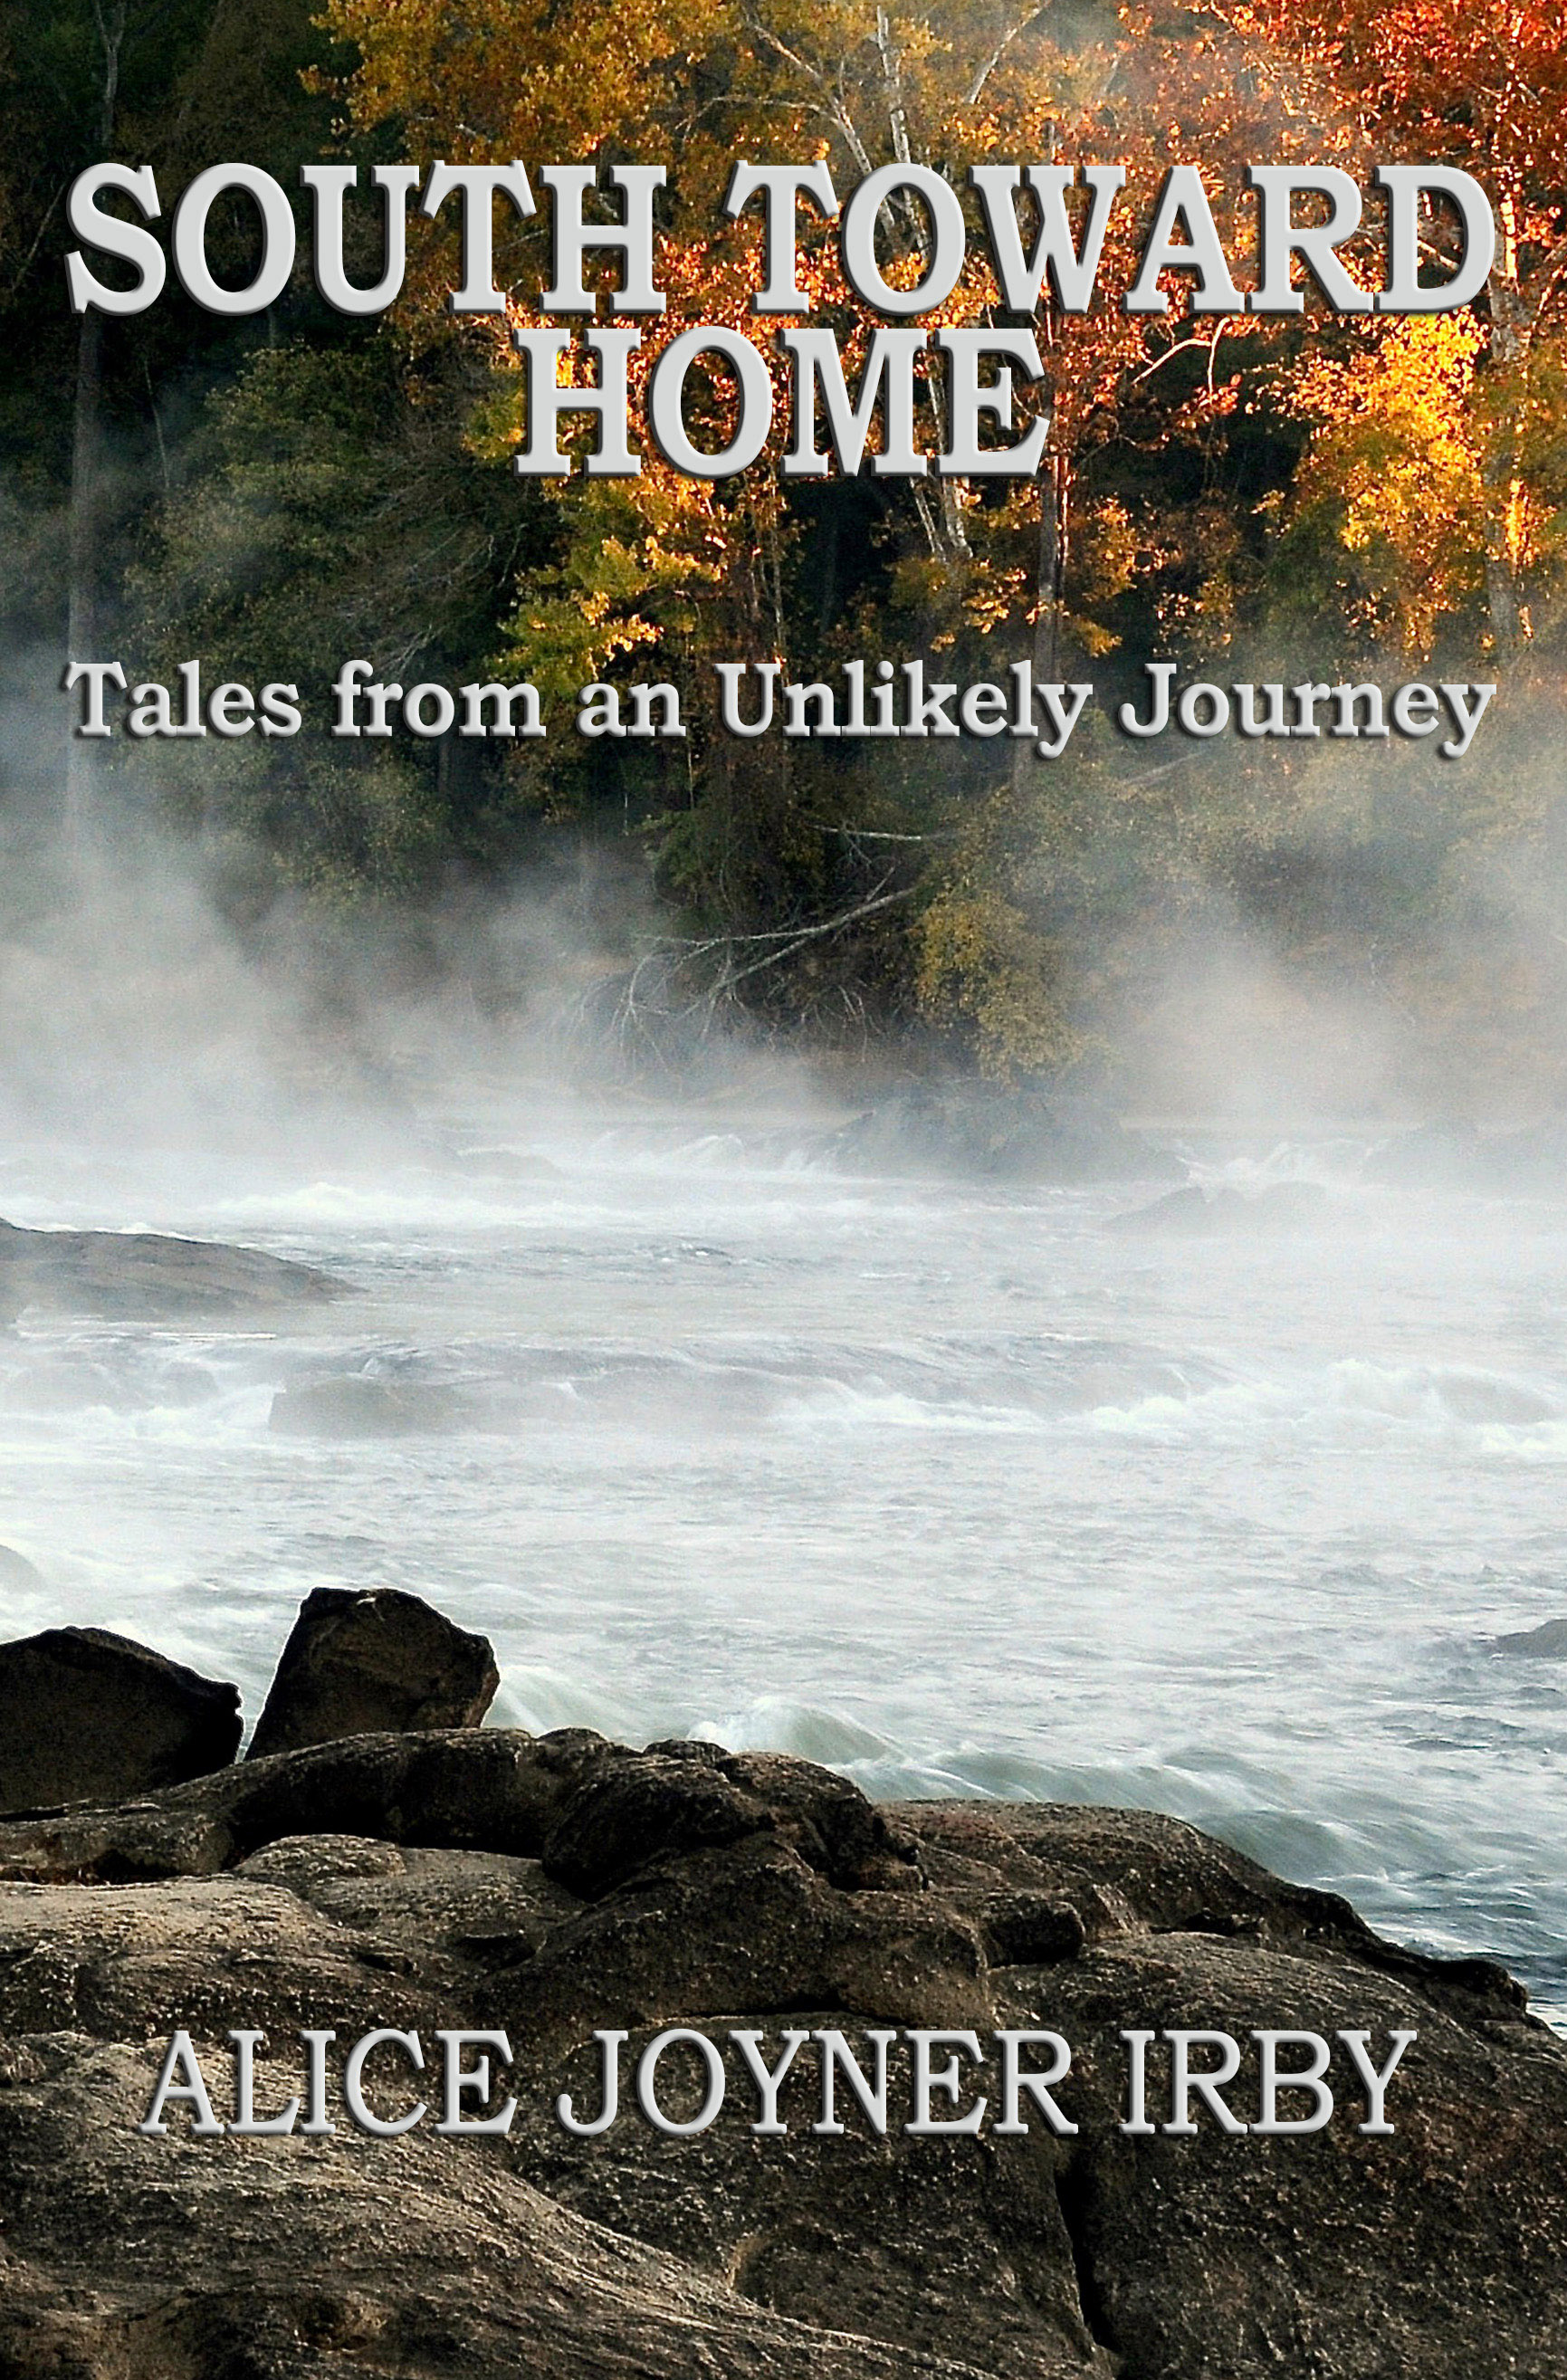 South_Toward_Home_Front_Cover_III.jpg